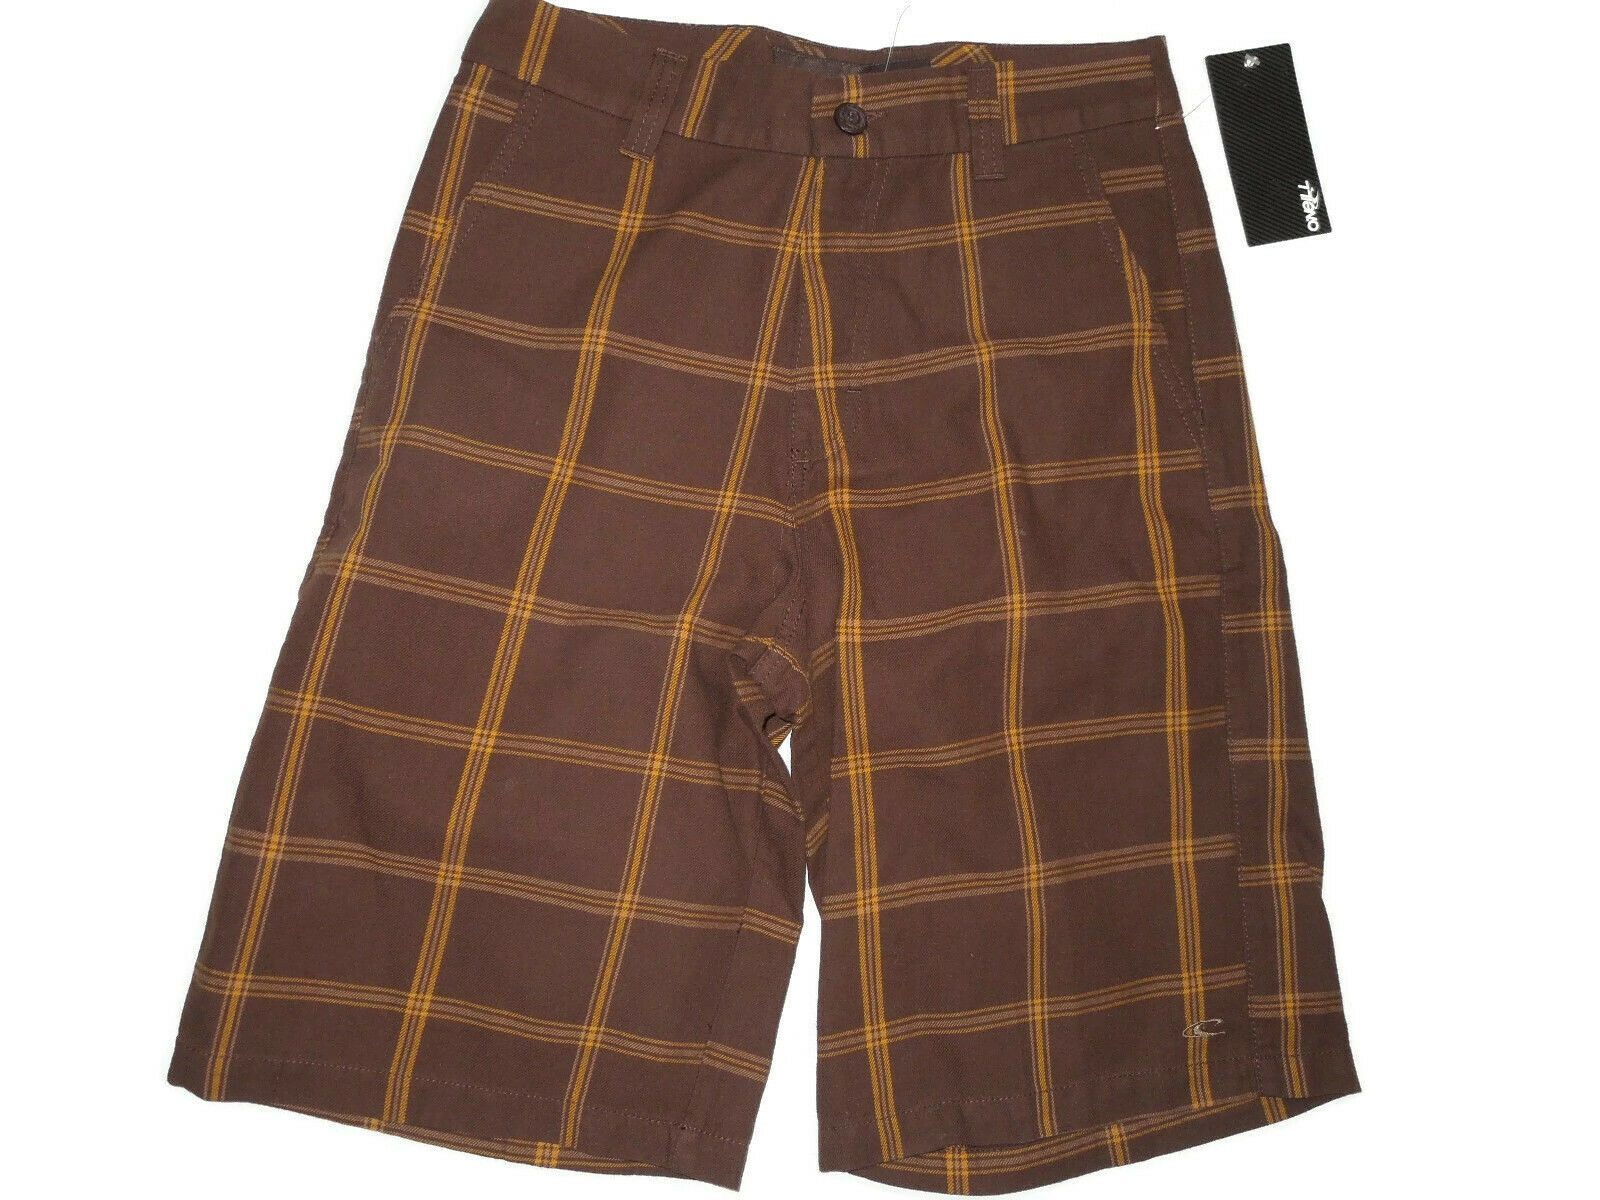 O'NEILL mens  brown plaid Astra Shorts size 28